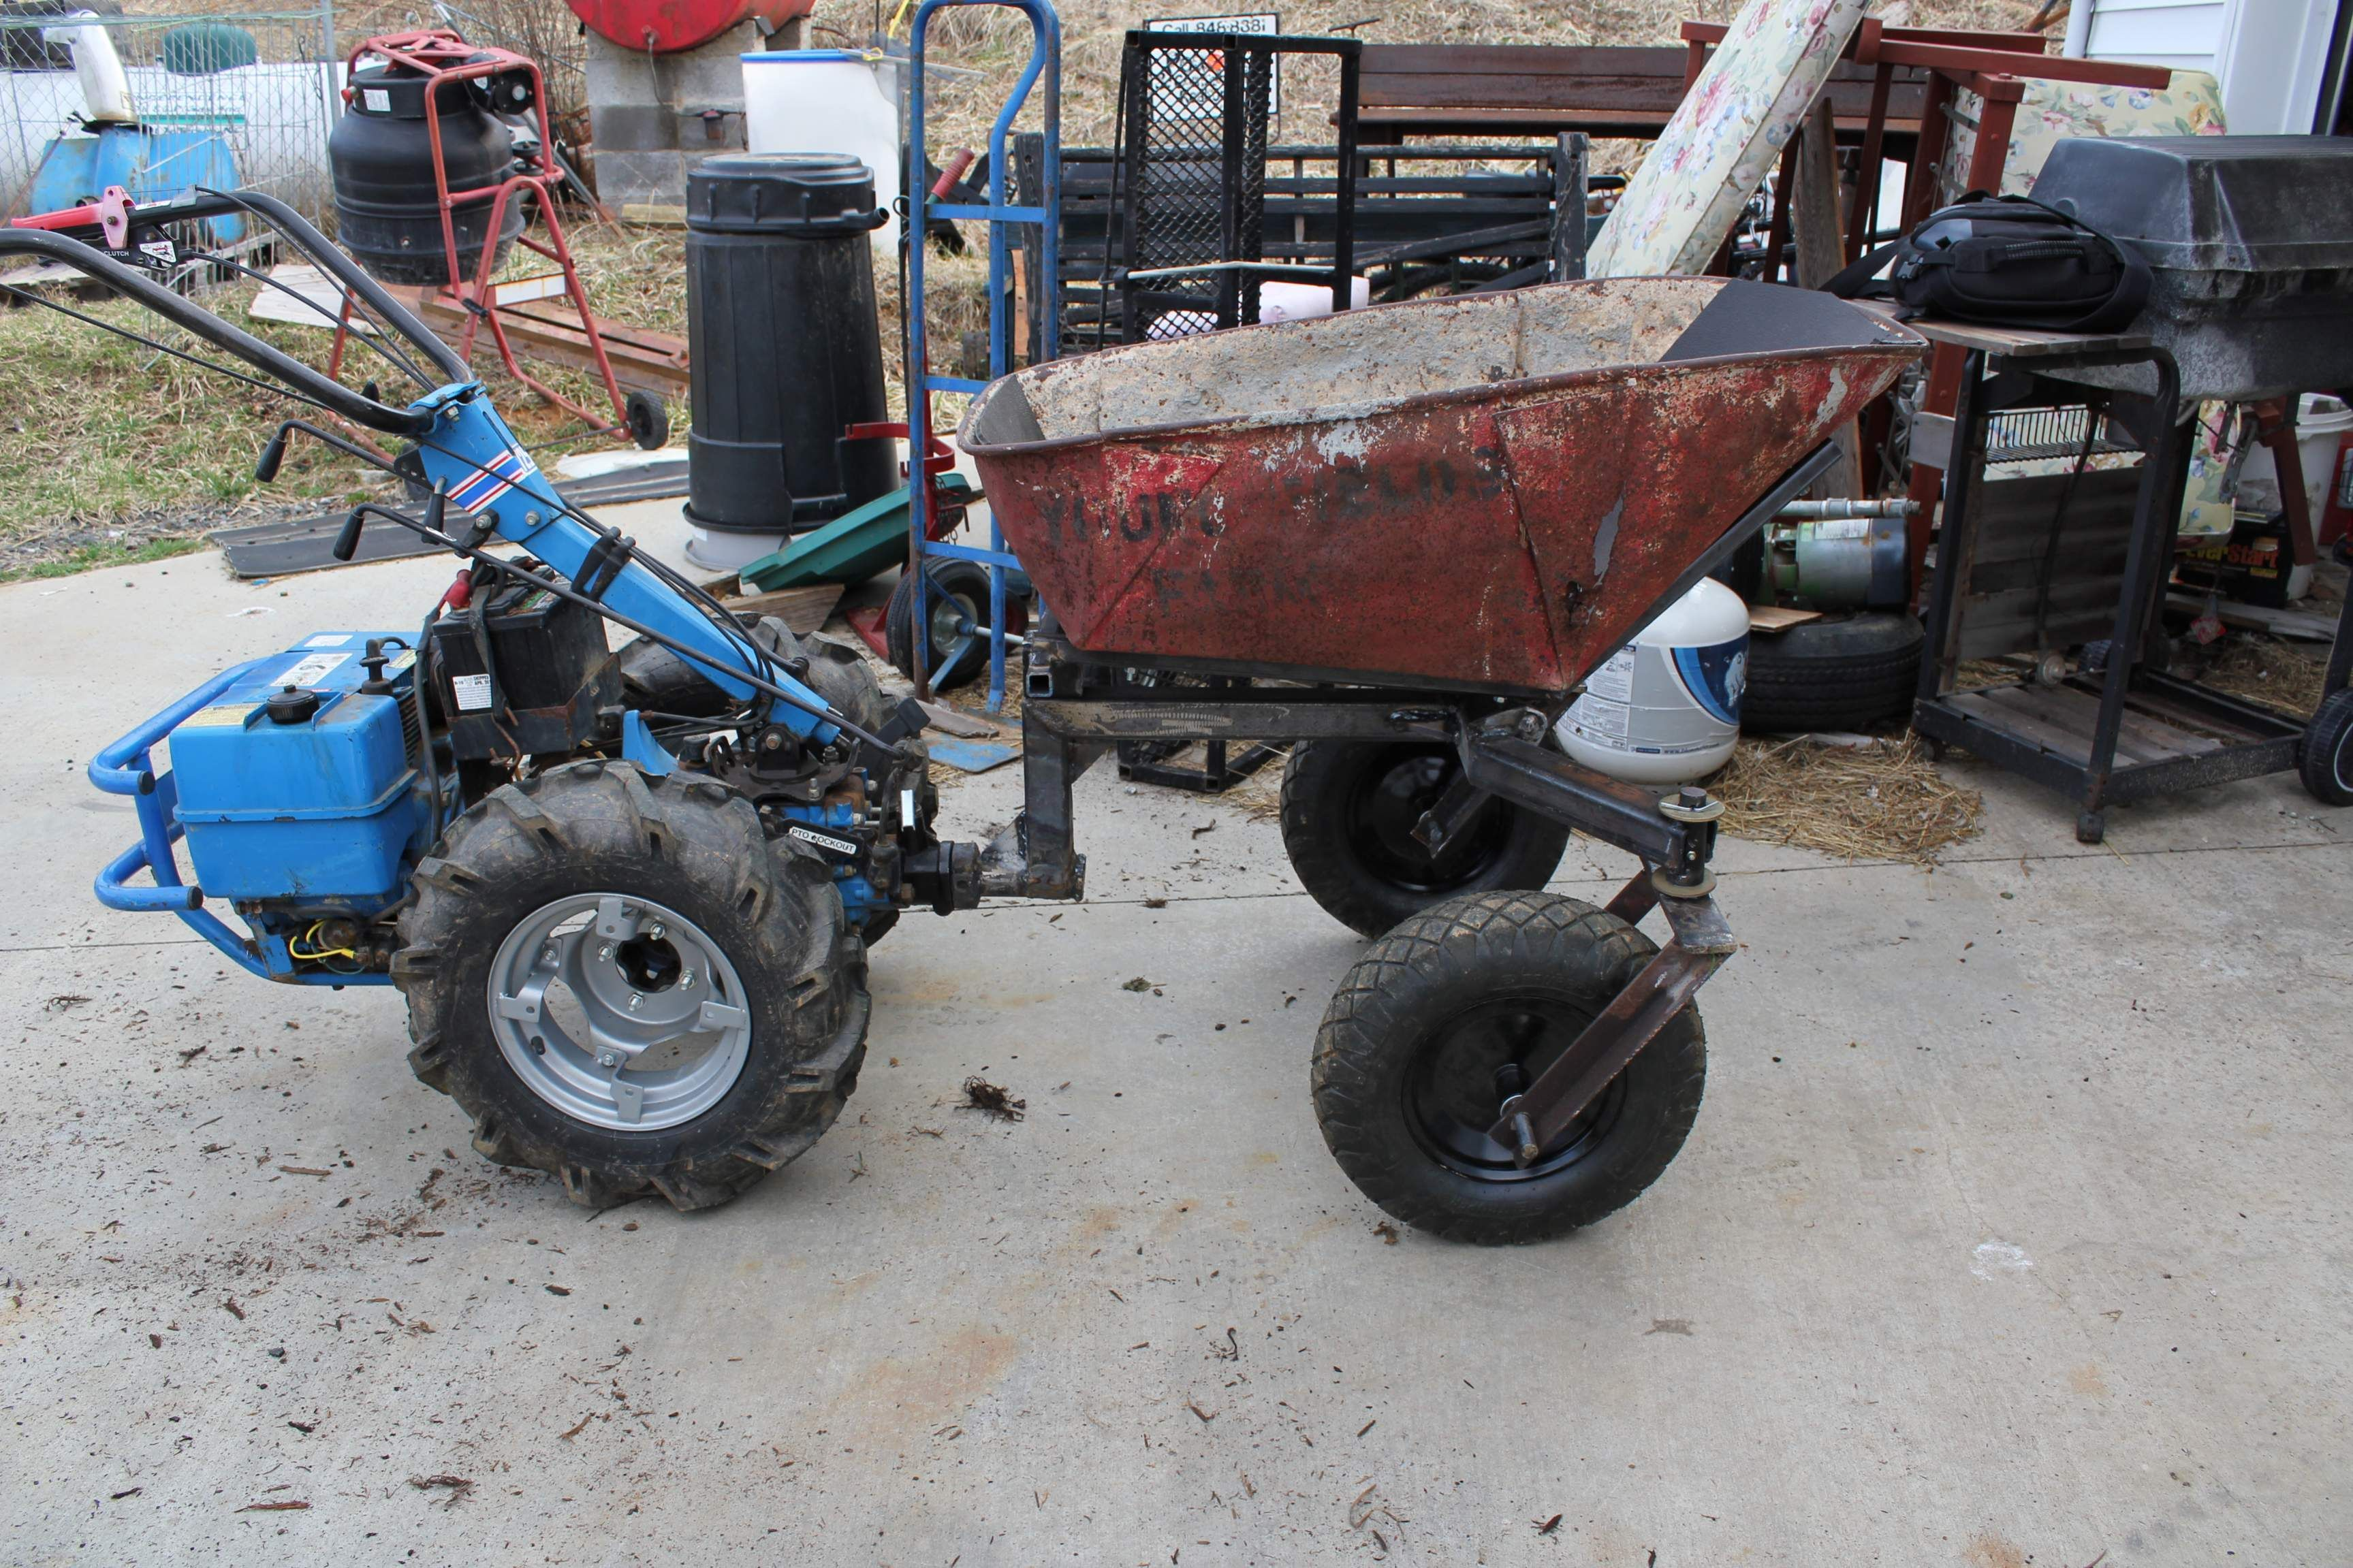 Space fabrication tractor cars